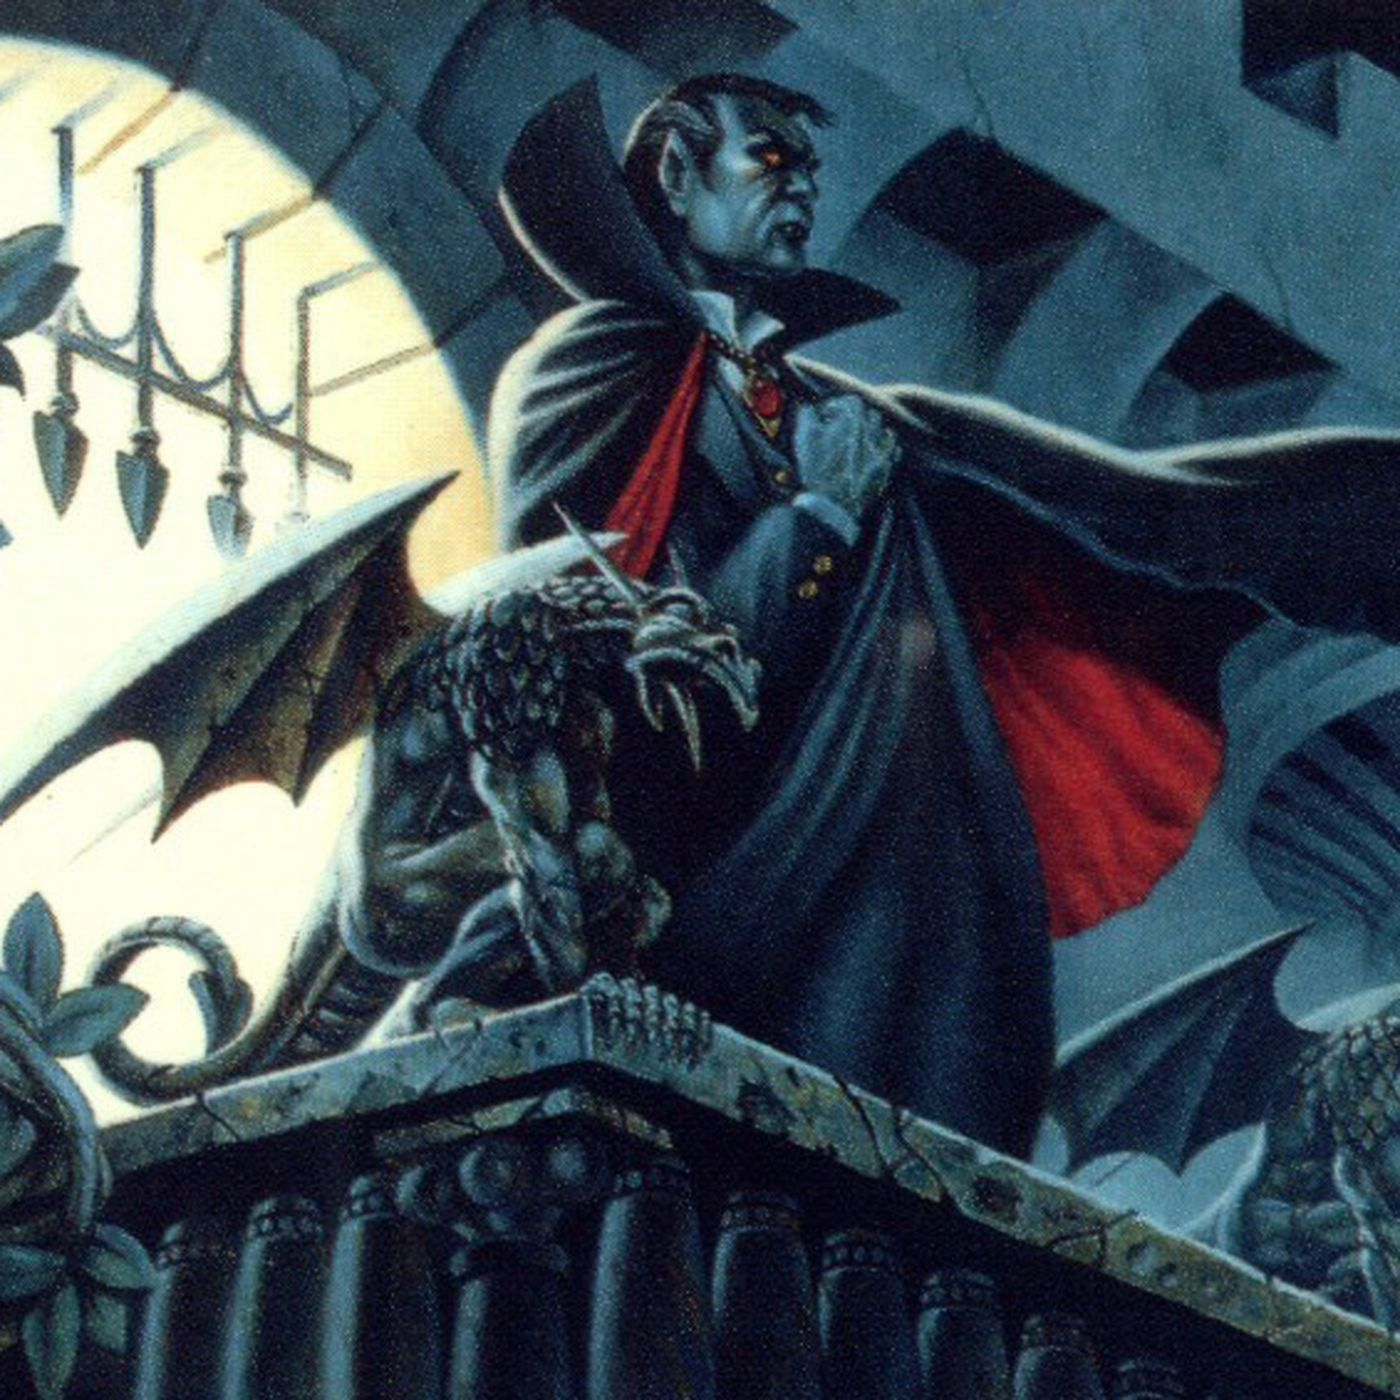 D&D's Ravenloft returns with the help of its original